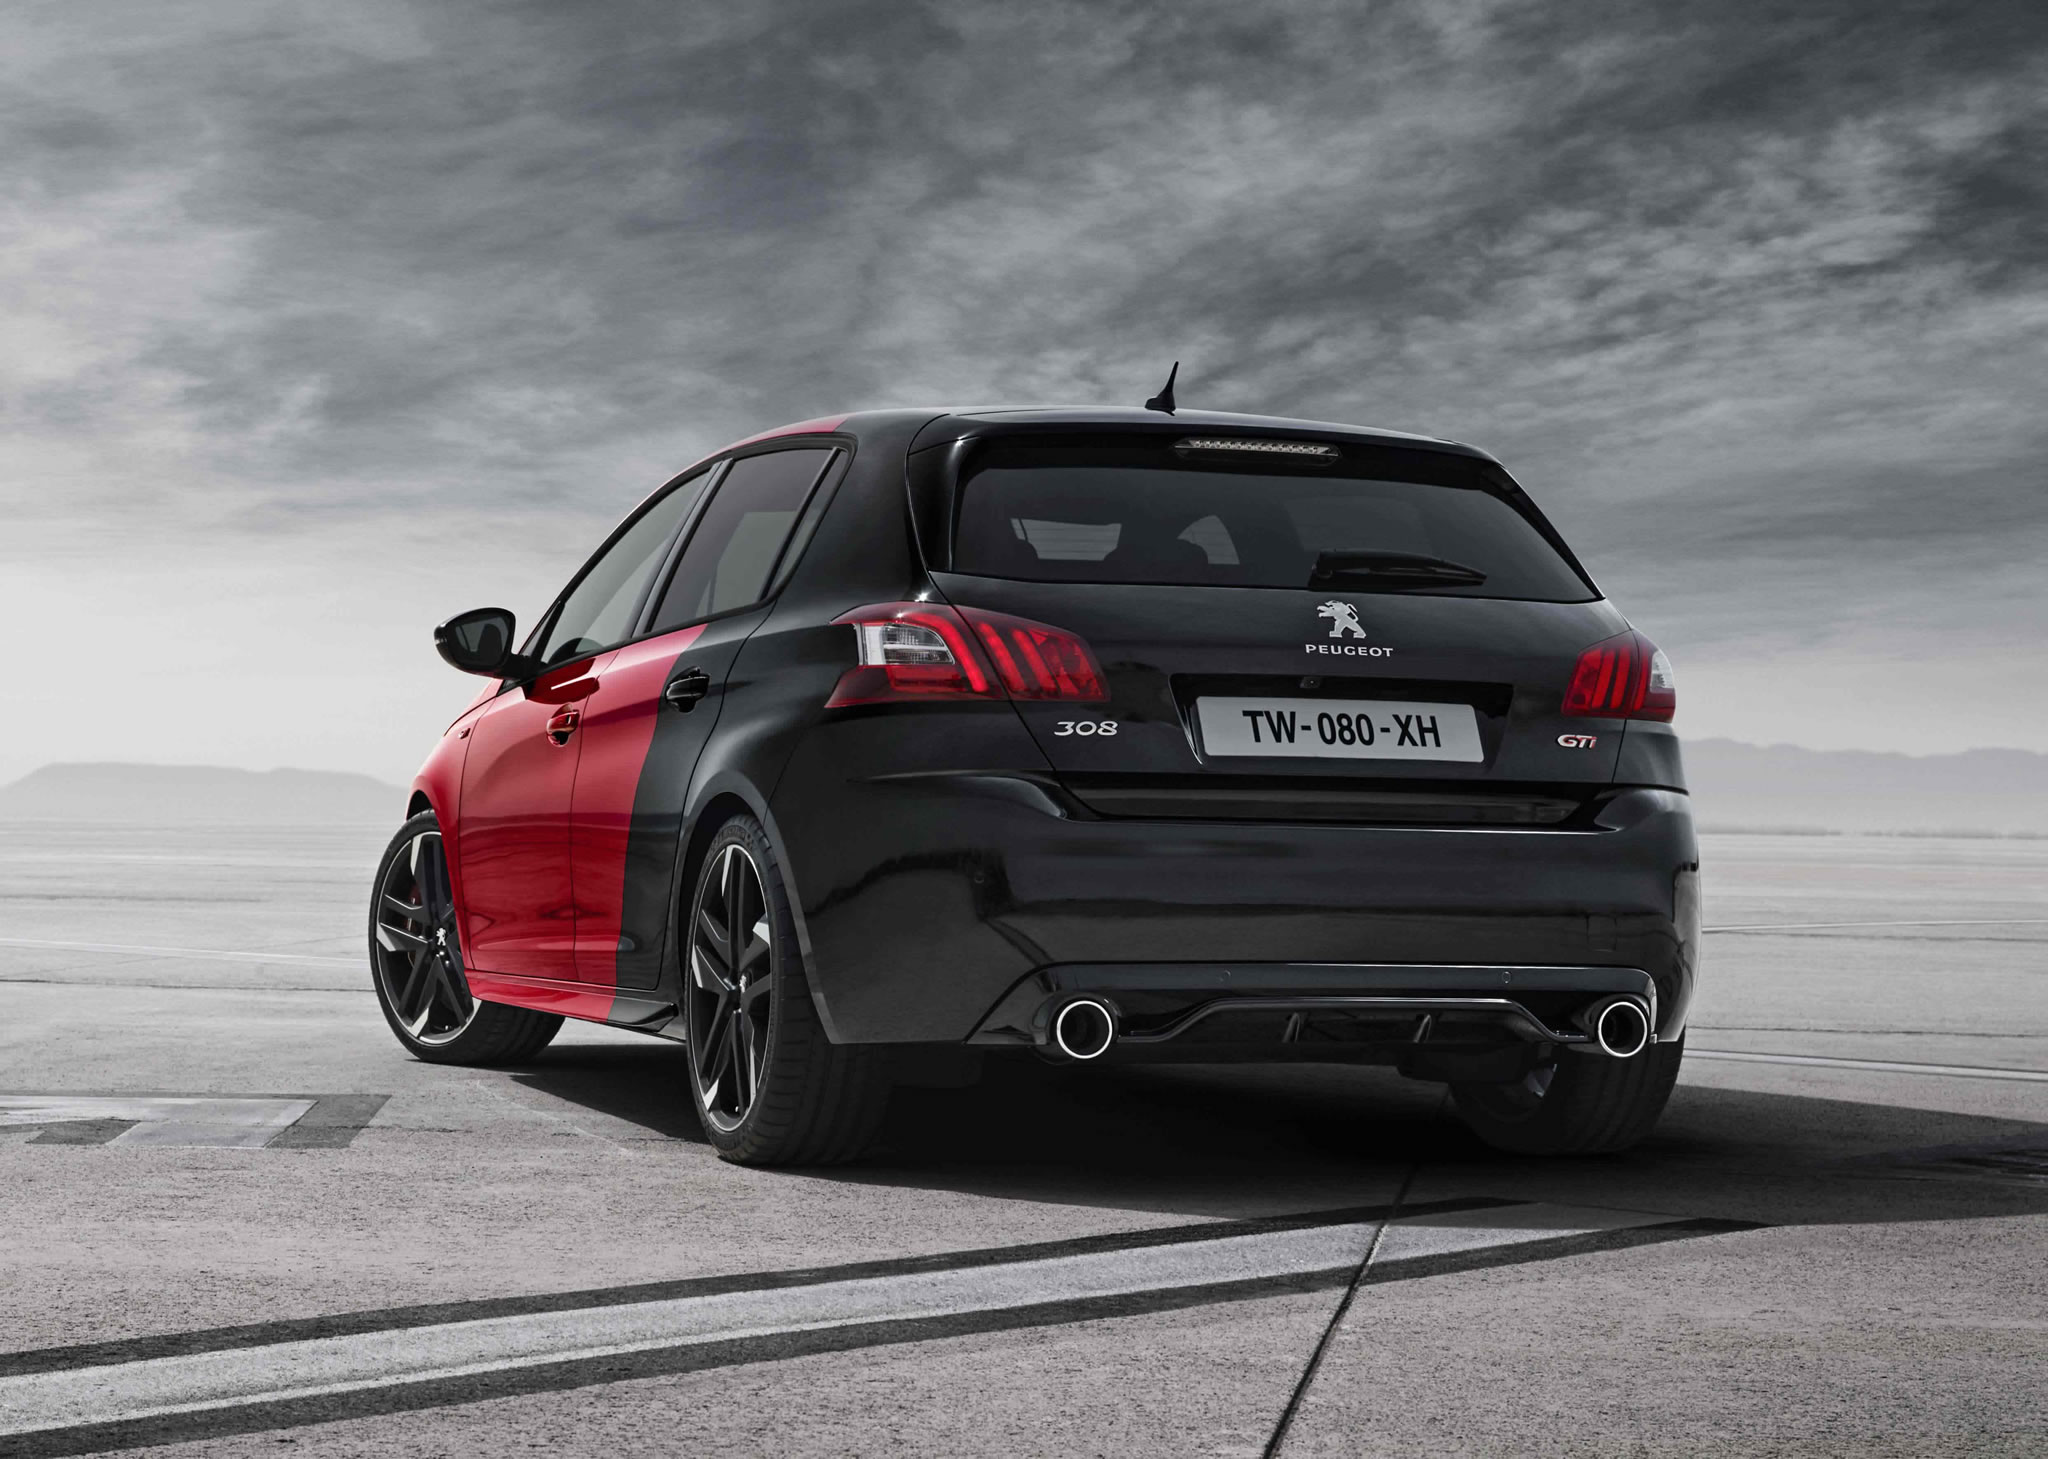 2016 Peugeot 308 Gti 270 Rear Photo Red And Black Color